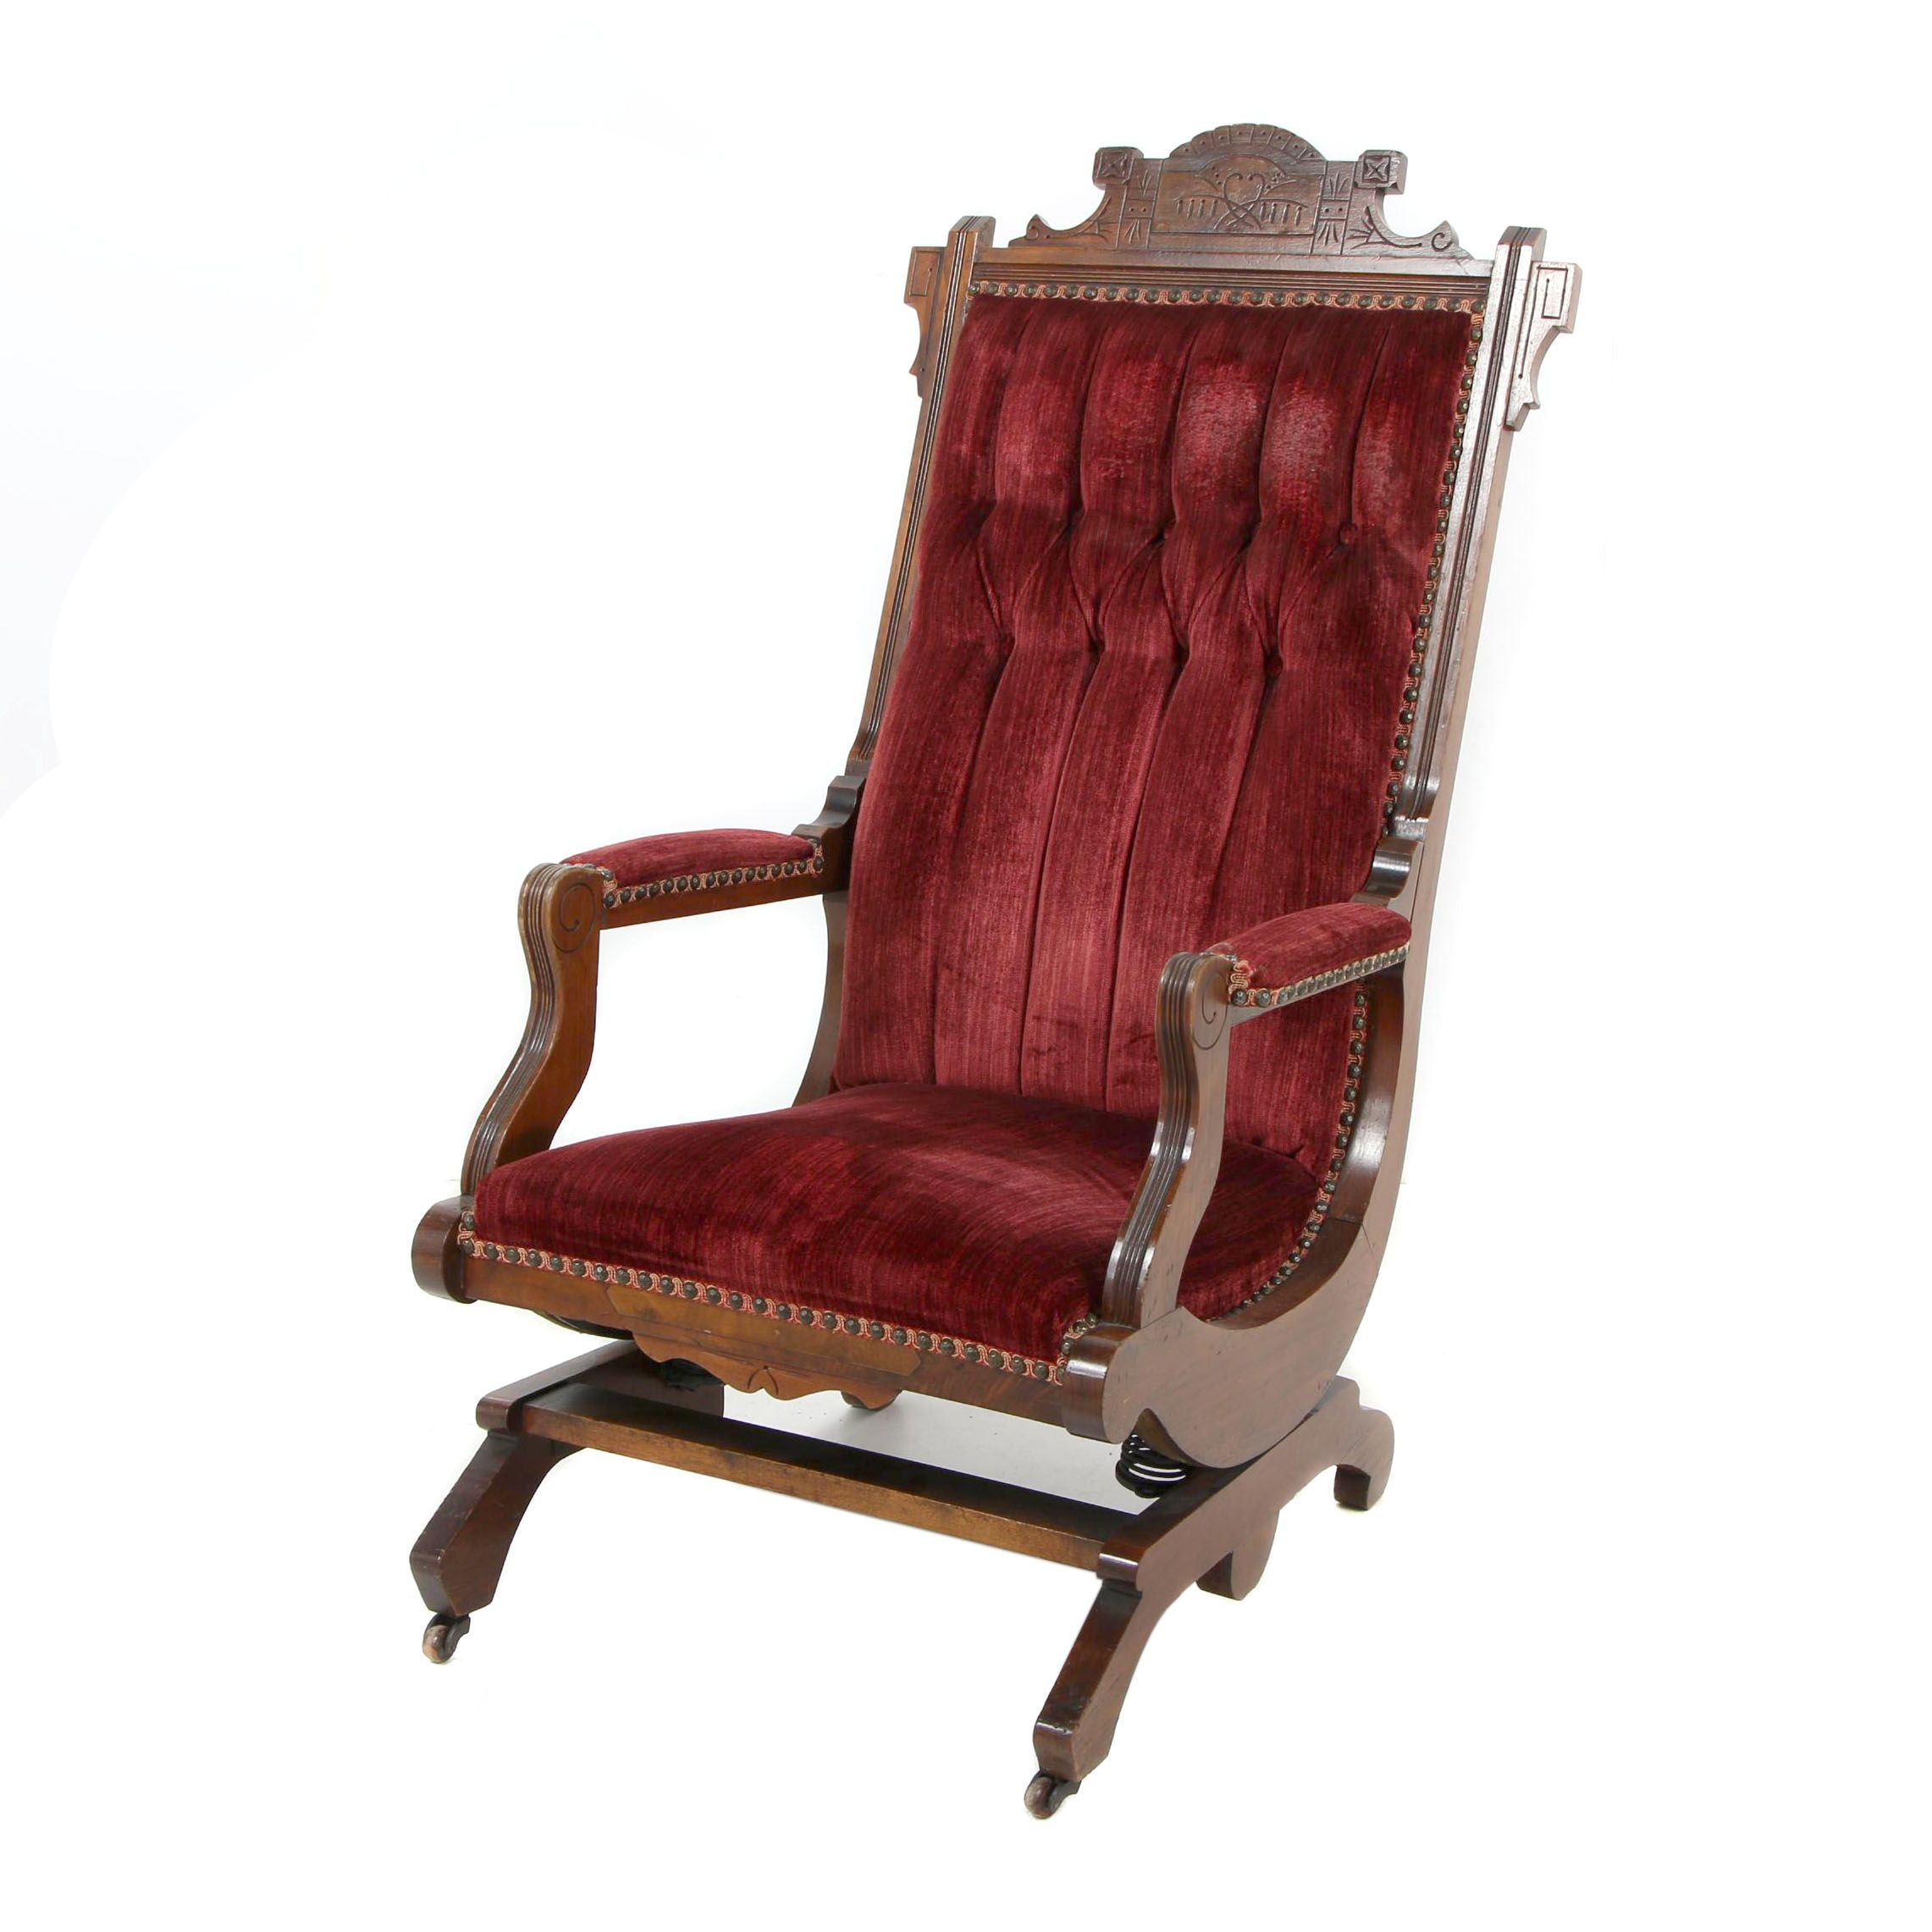 Eastlake Victorian Carved Walnut Platform Rocker, circa 1900